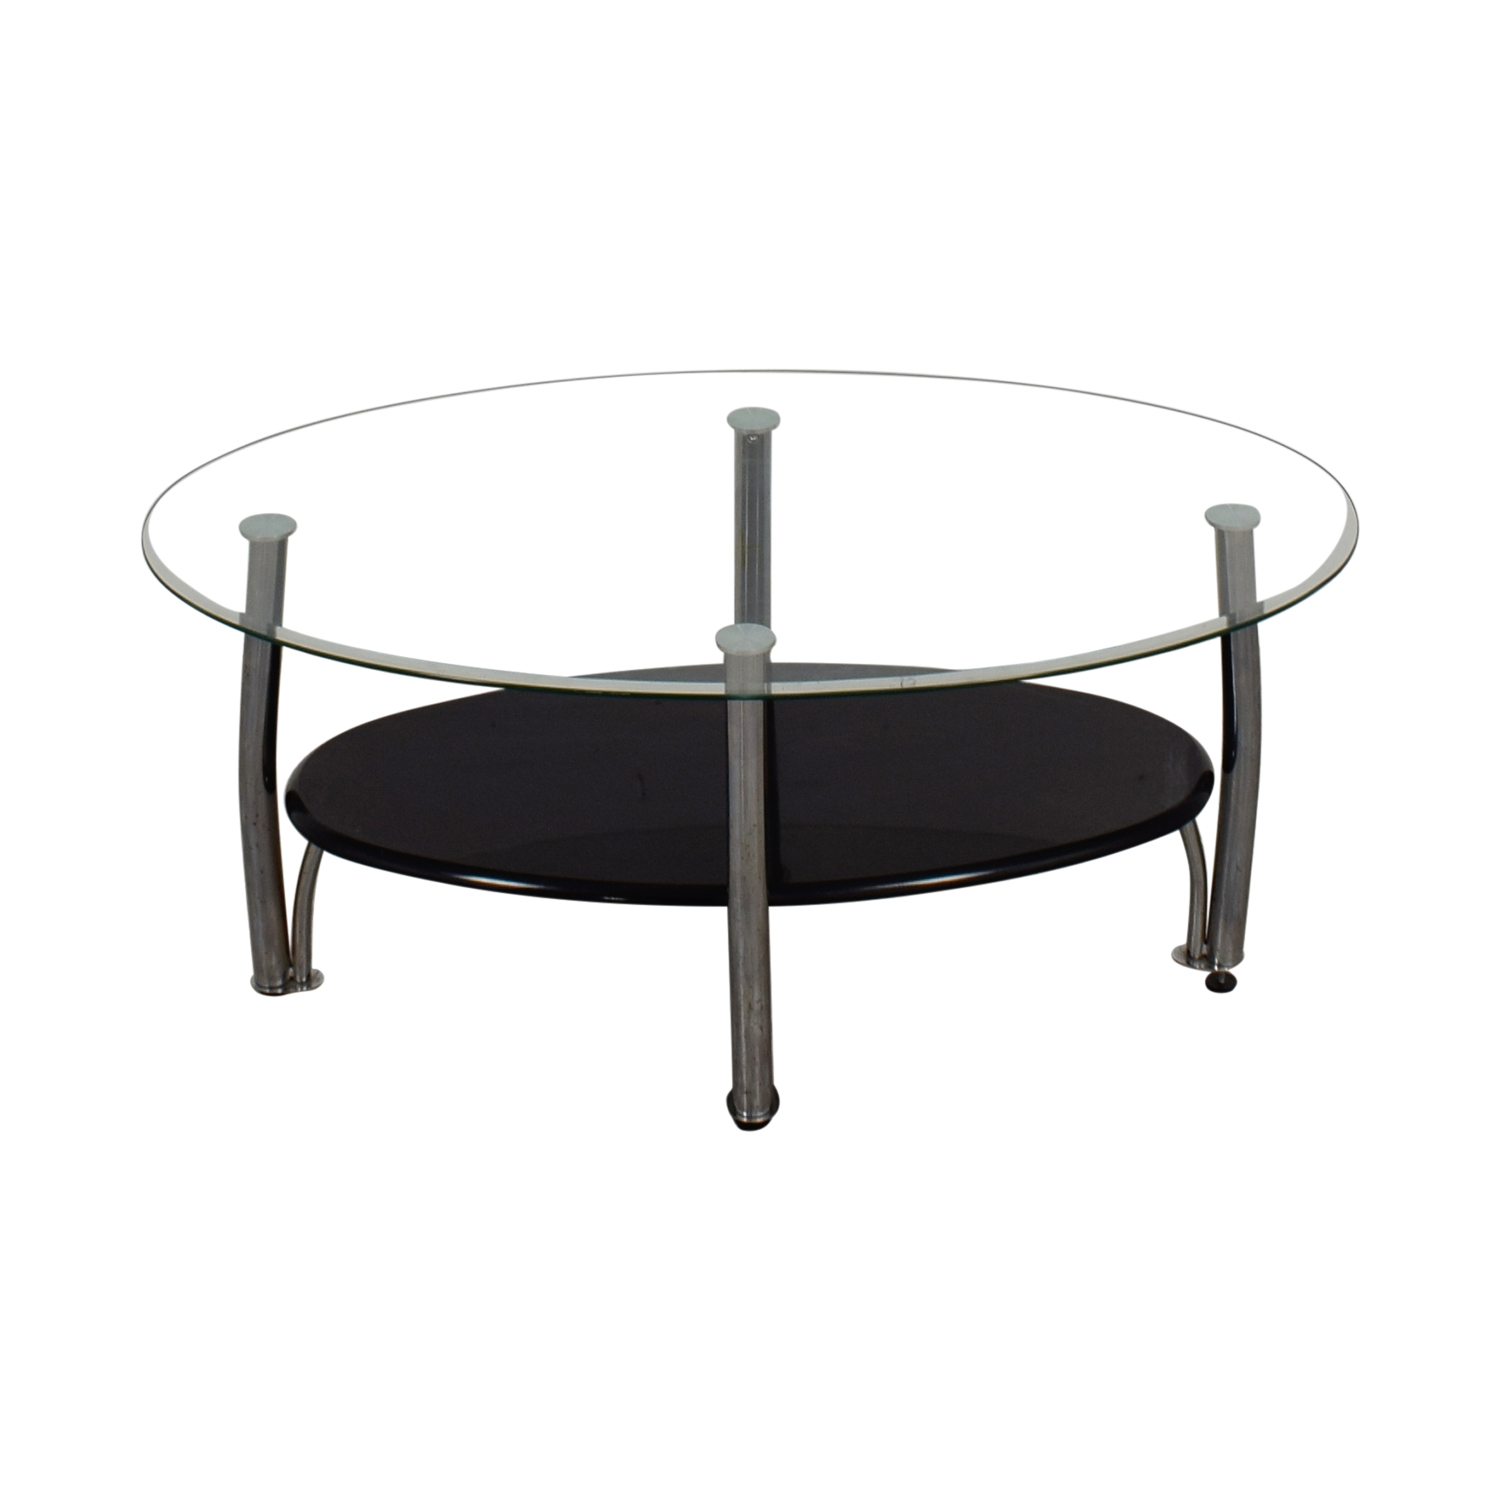 Ashely Furniture Ashely Furniture Oval Glass and Black Coffee Table on sale